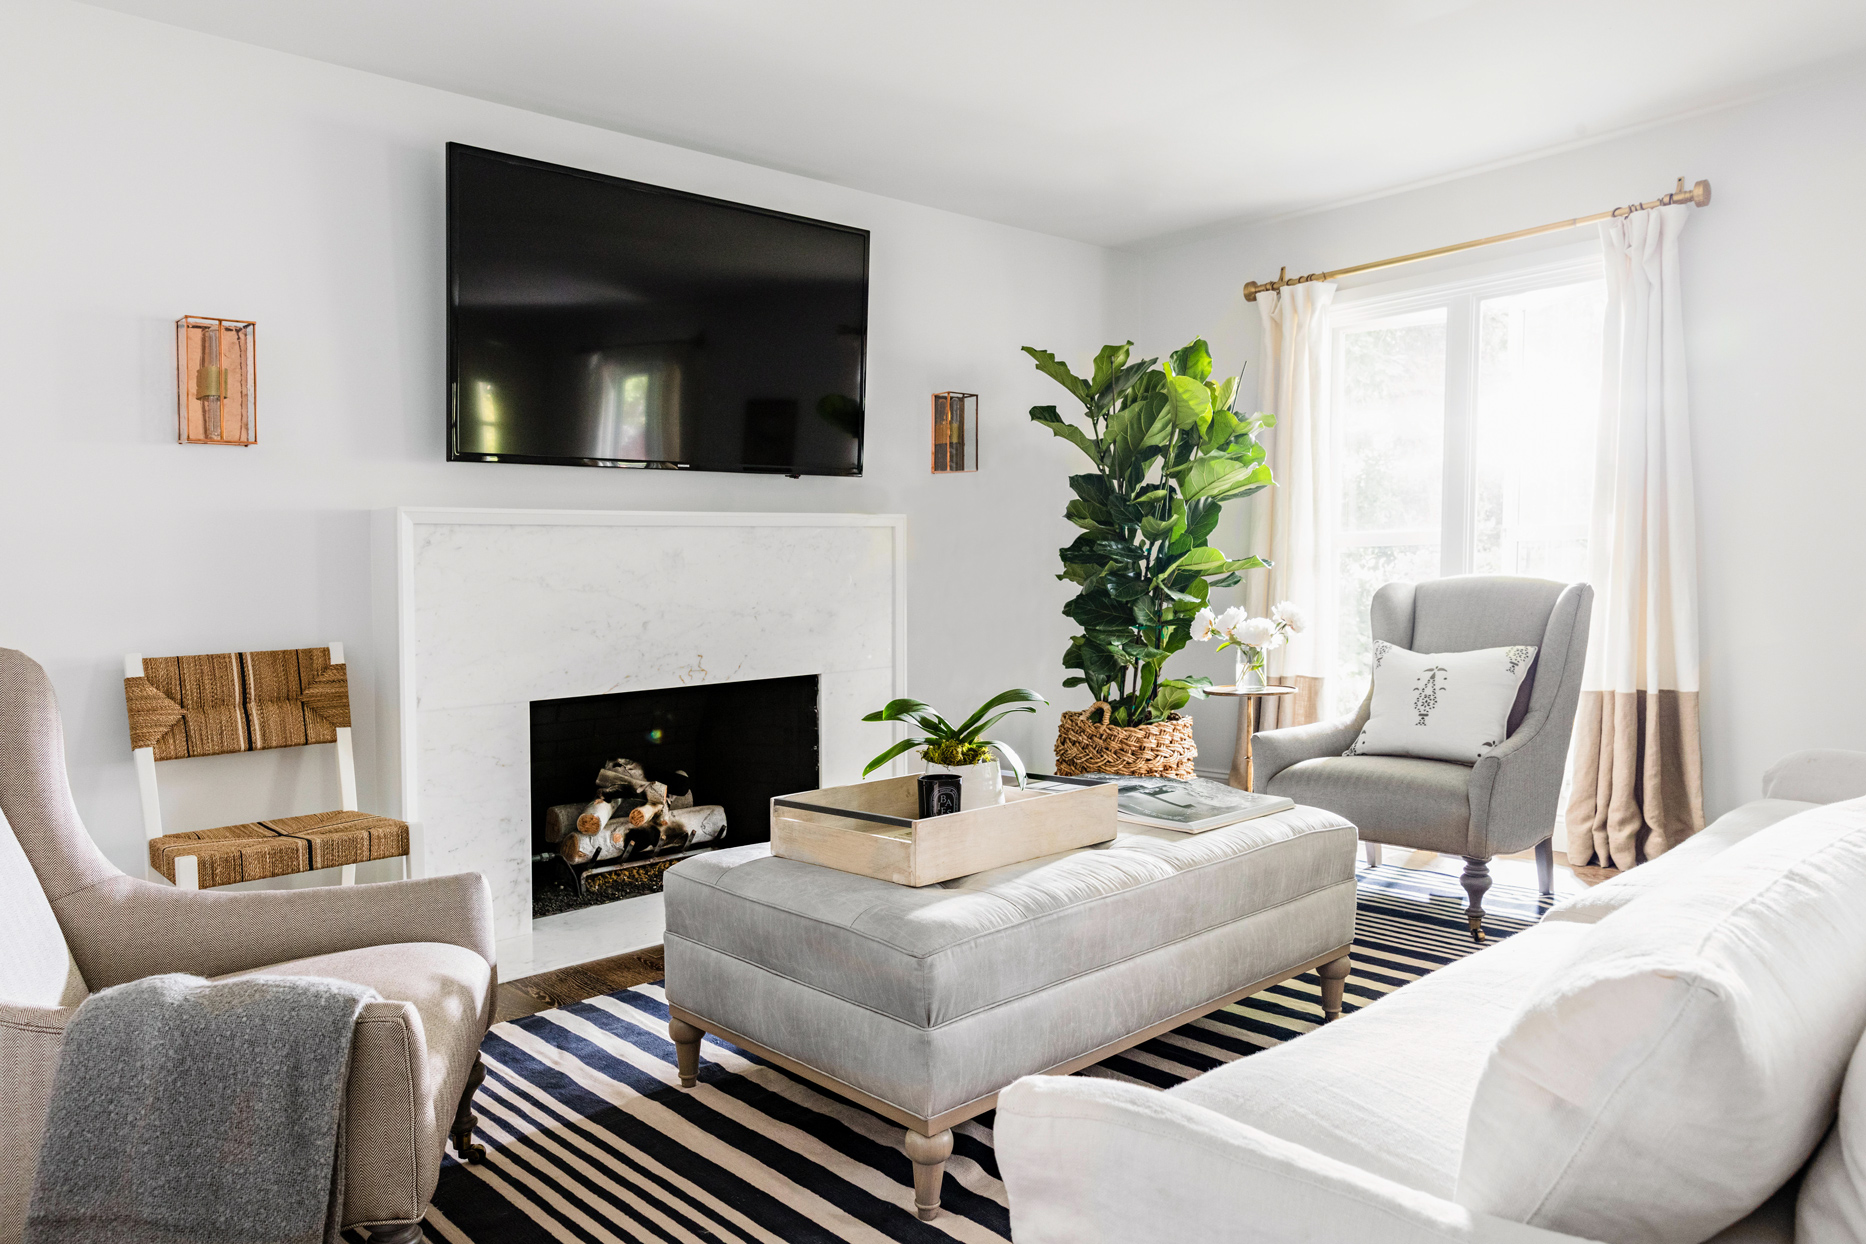 How To Arrange Furniture In Every Room, Living Room Dining Room Furniture Arrangement